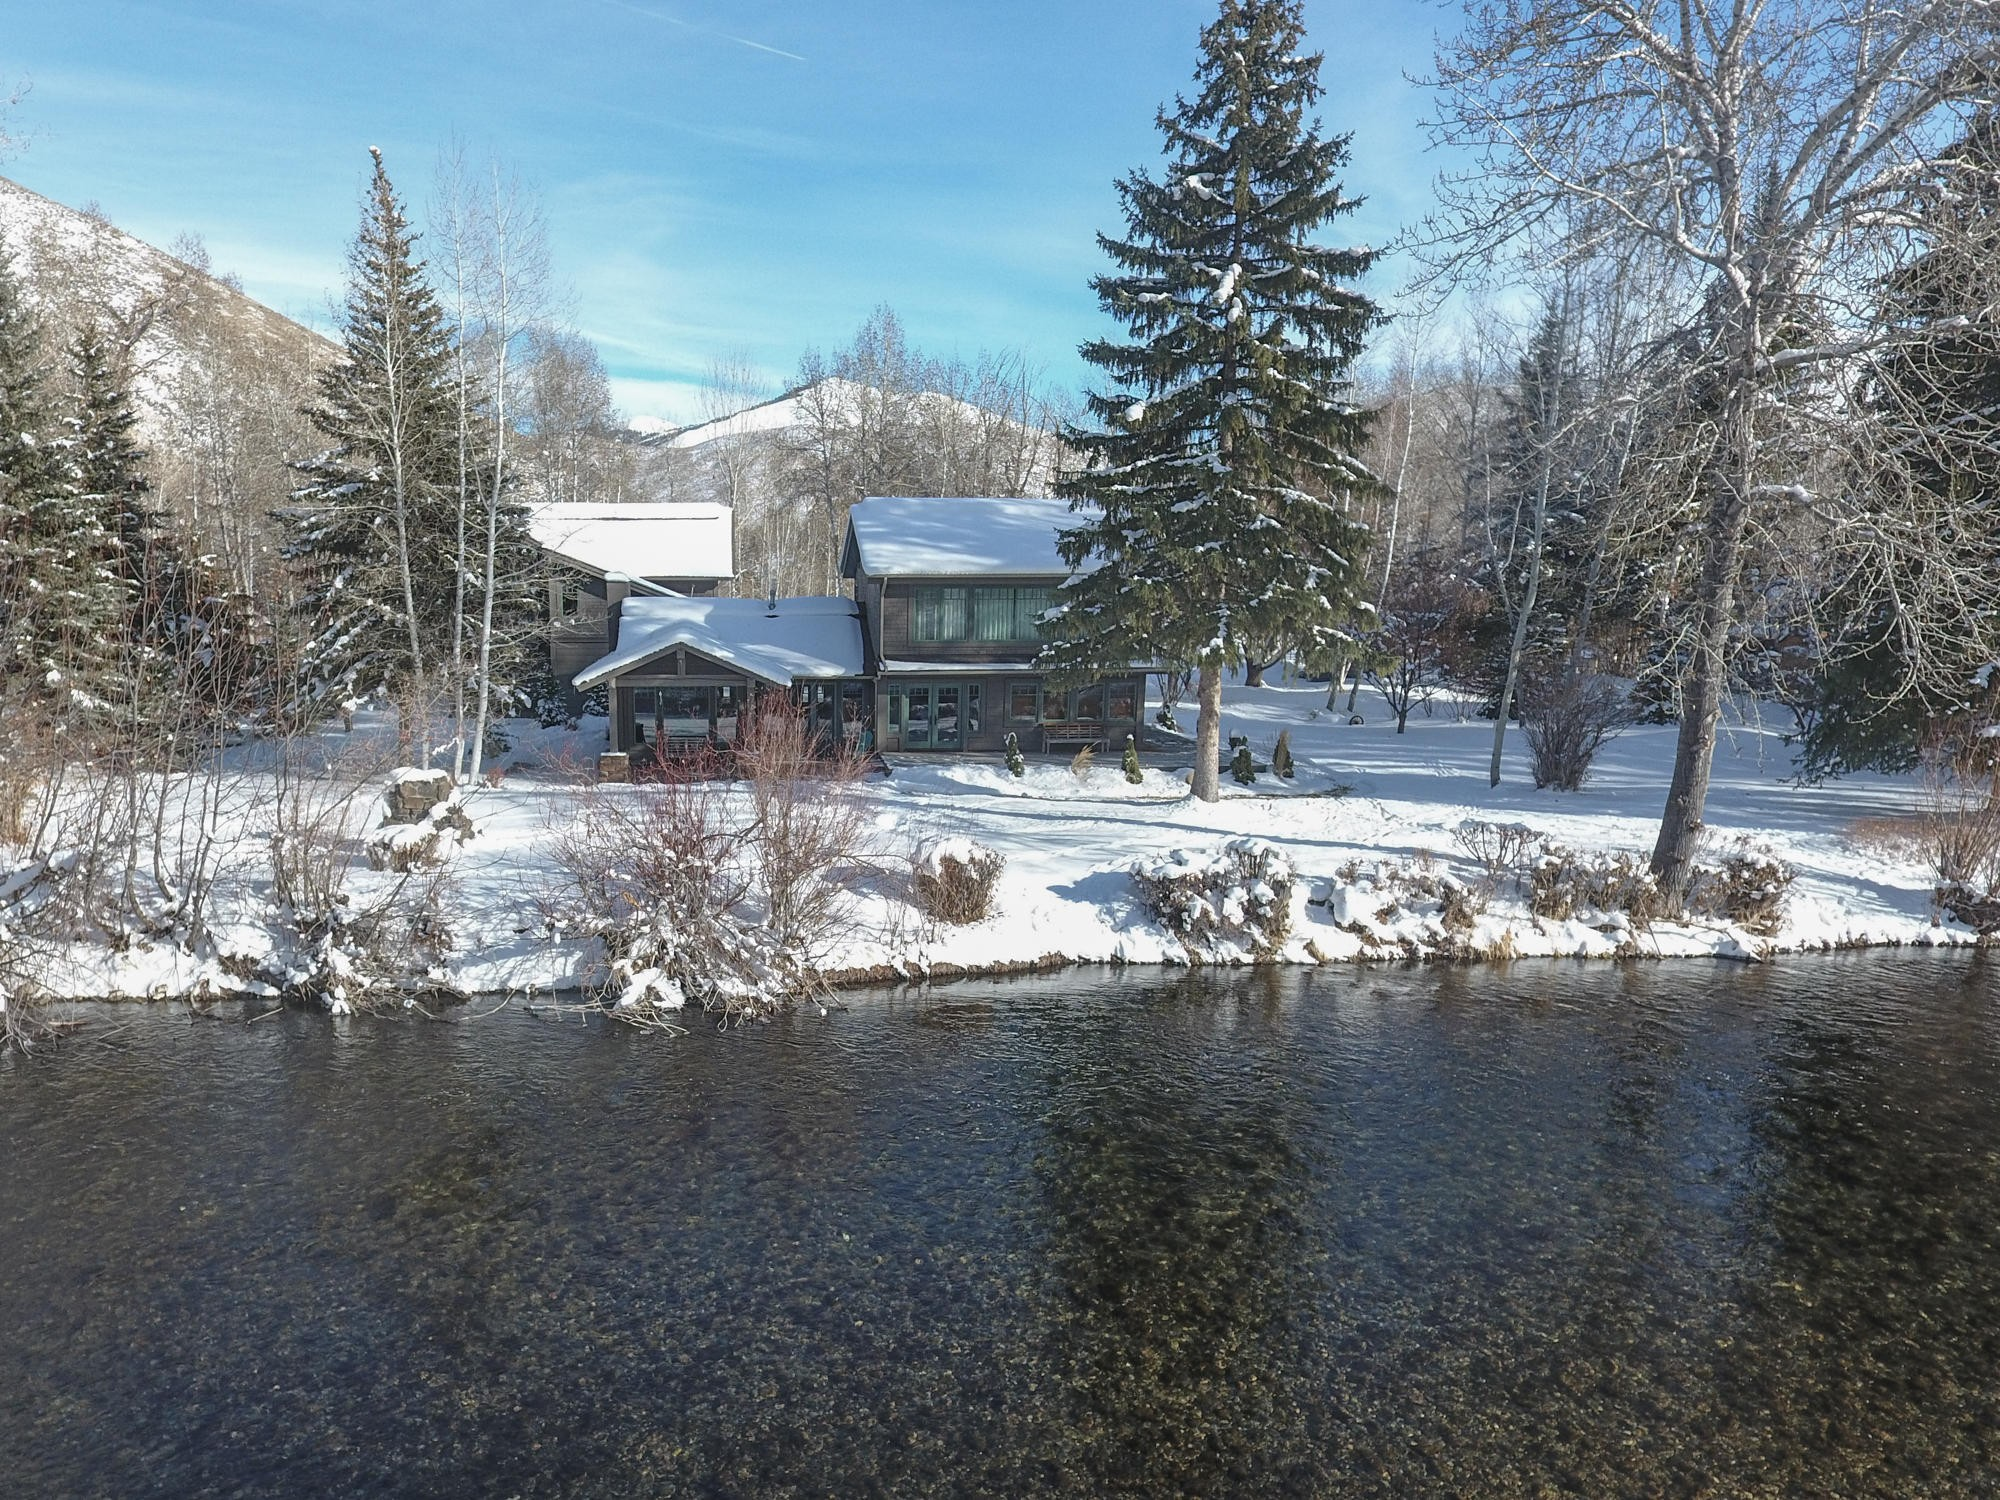 114 abby rd a luxury single family home for sale in hailey, idaho property id 19-325667 christie s international real estate